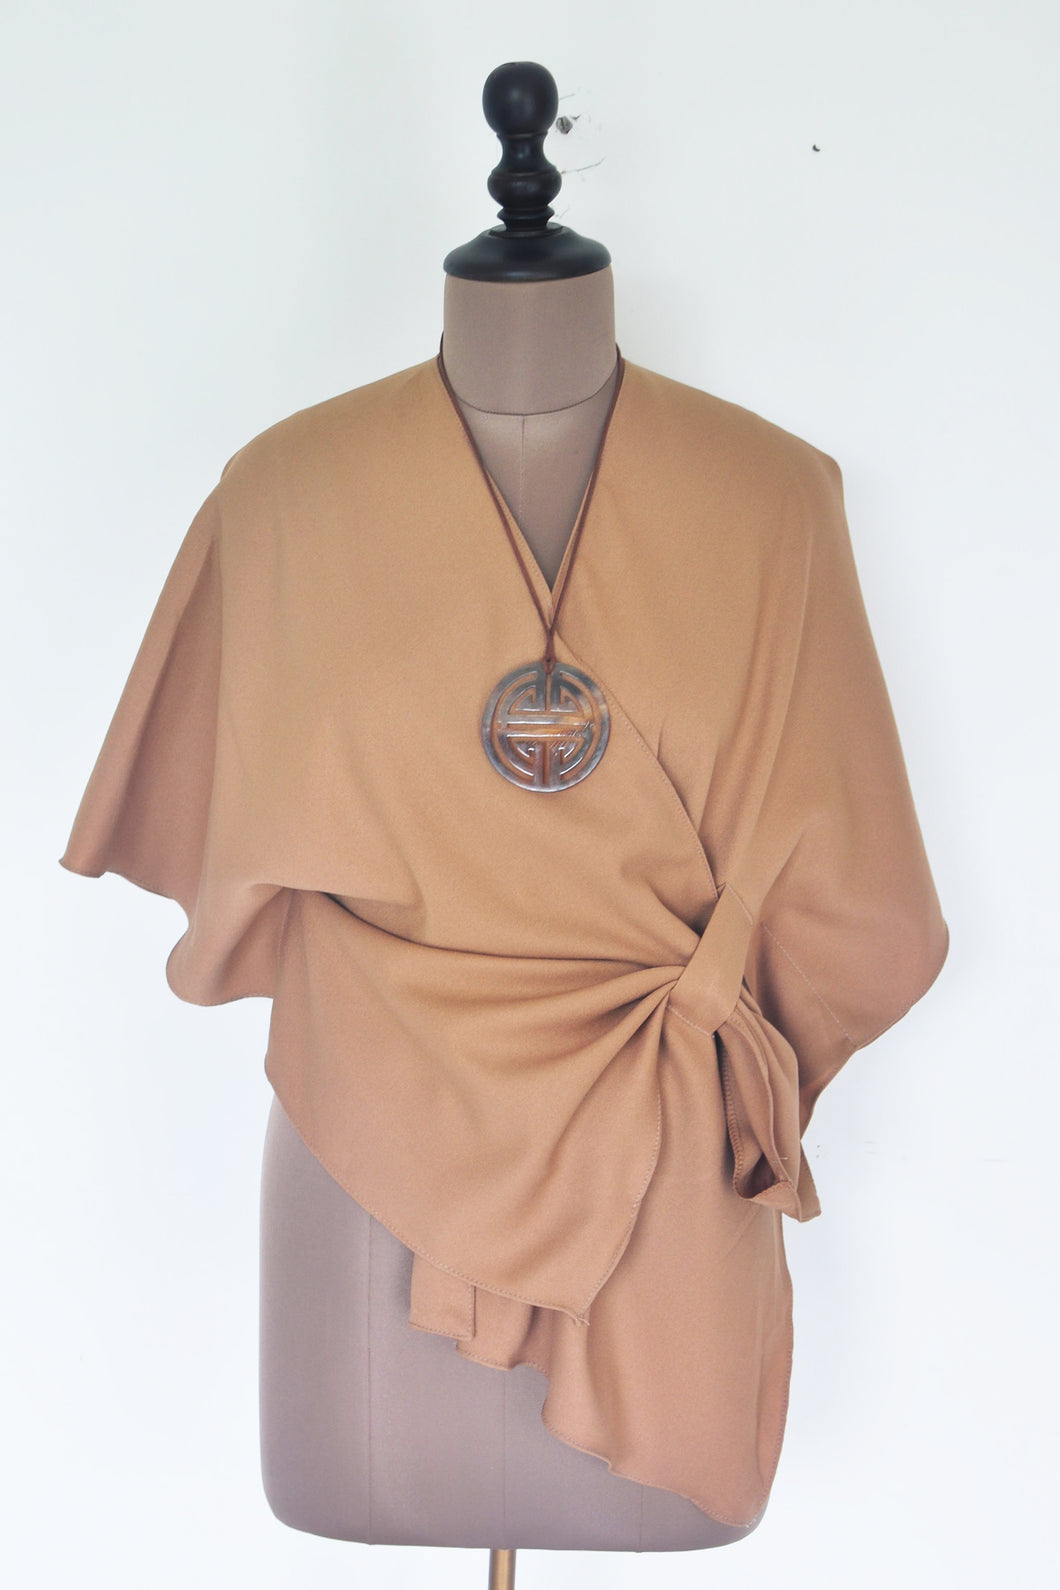 Cross Over Top With Necklace- Beige